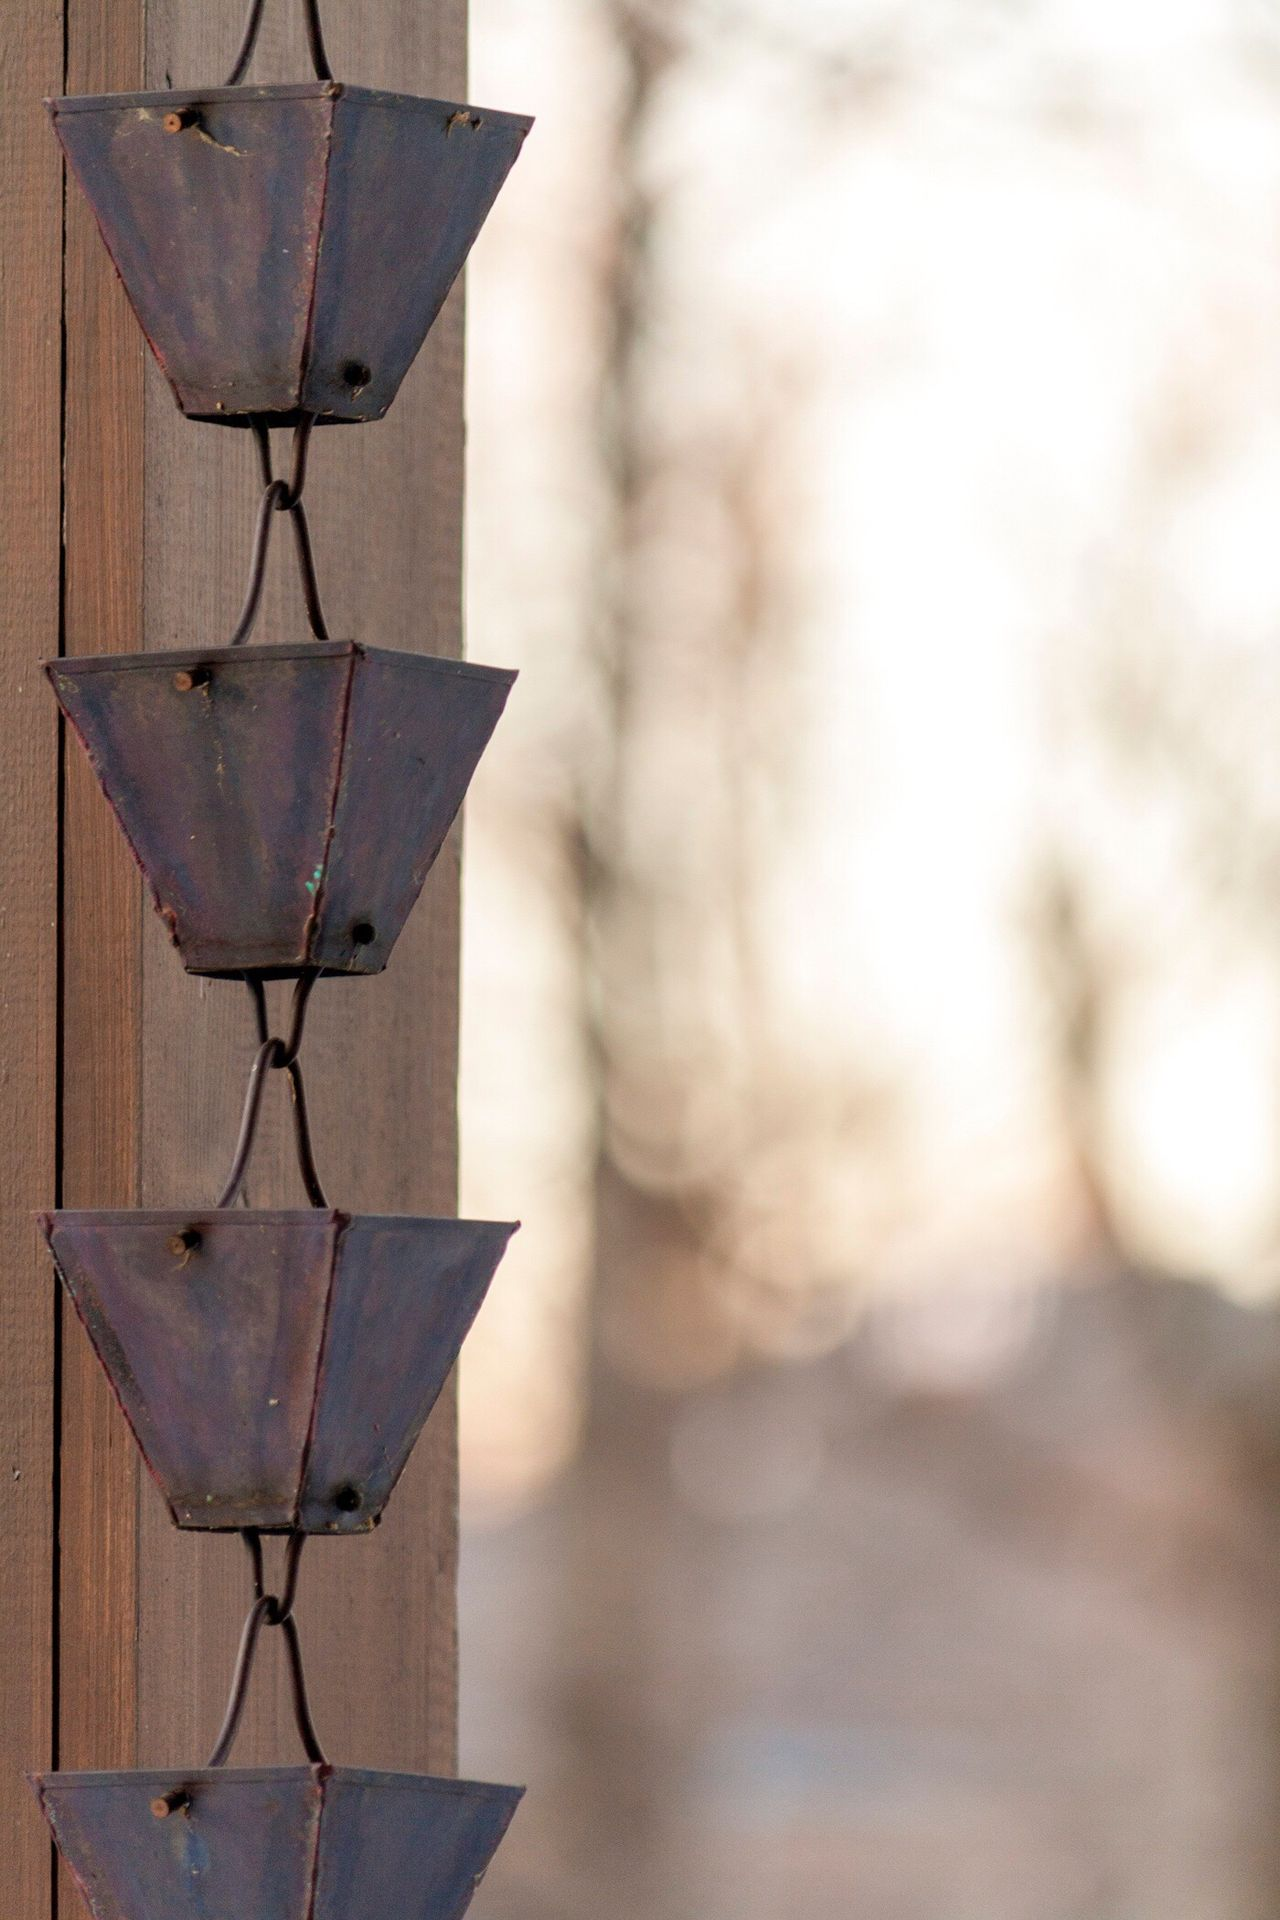 Focus On Foreground Rain Drainage Pipe Bells Close-up Hanging No People Rusted Metal  Rich Colors Browns Outdoors Backyard Deck Outdoor Living Dusk Dead Trees Dormant Dormant Trees End Of Day Close Up Man In Nature